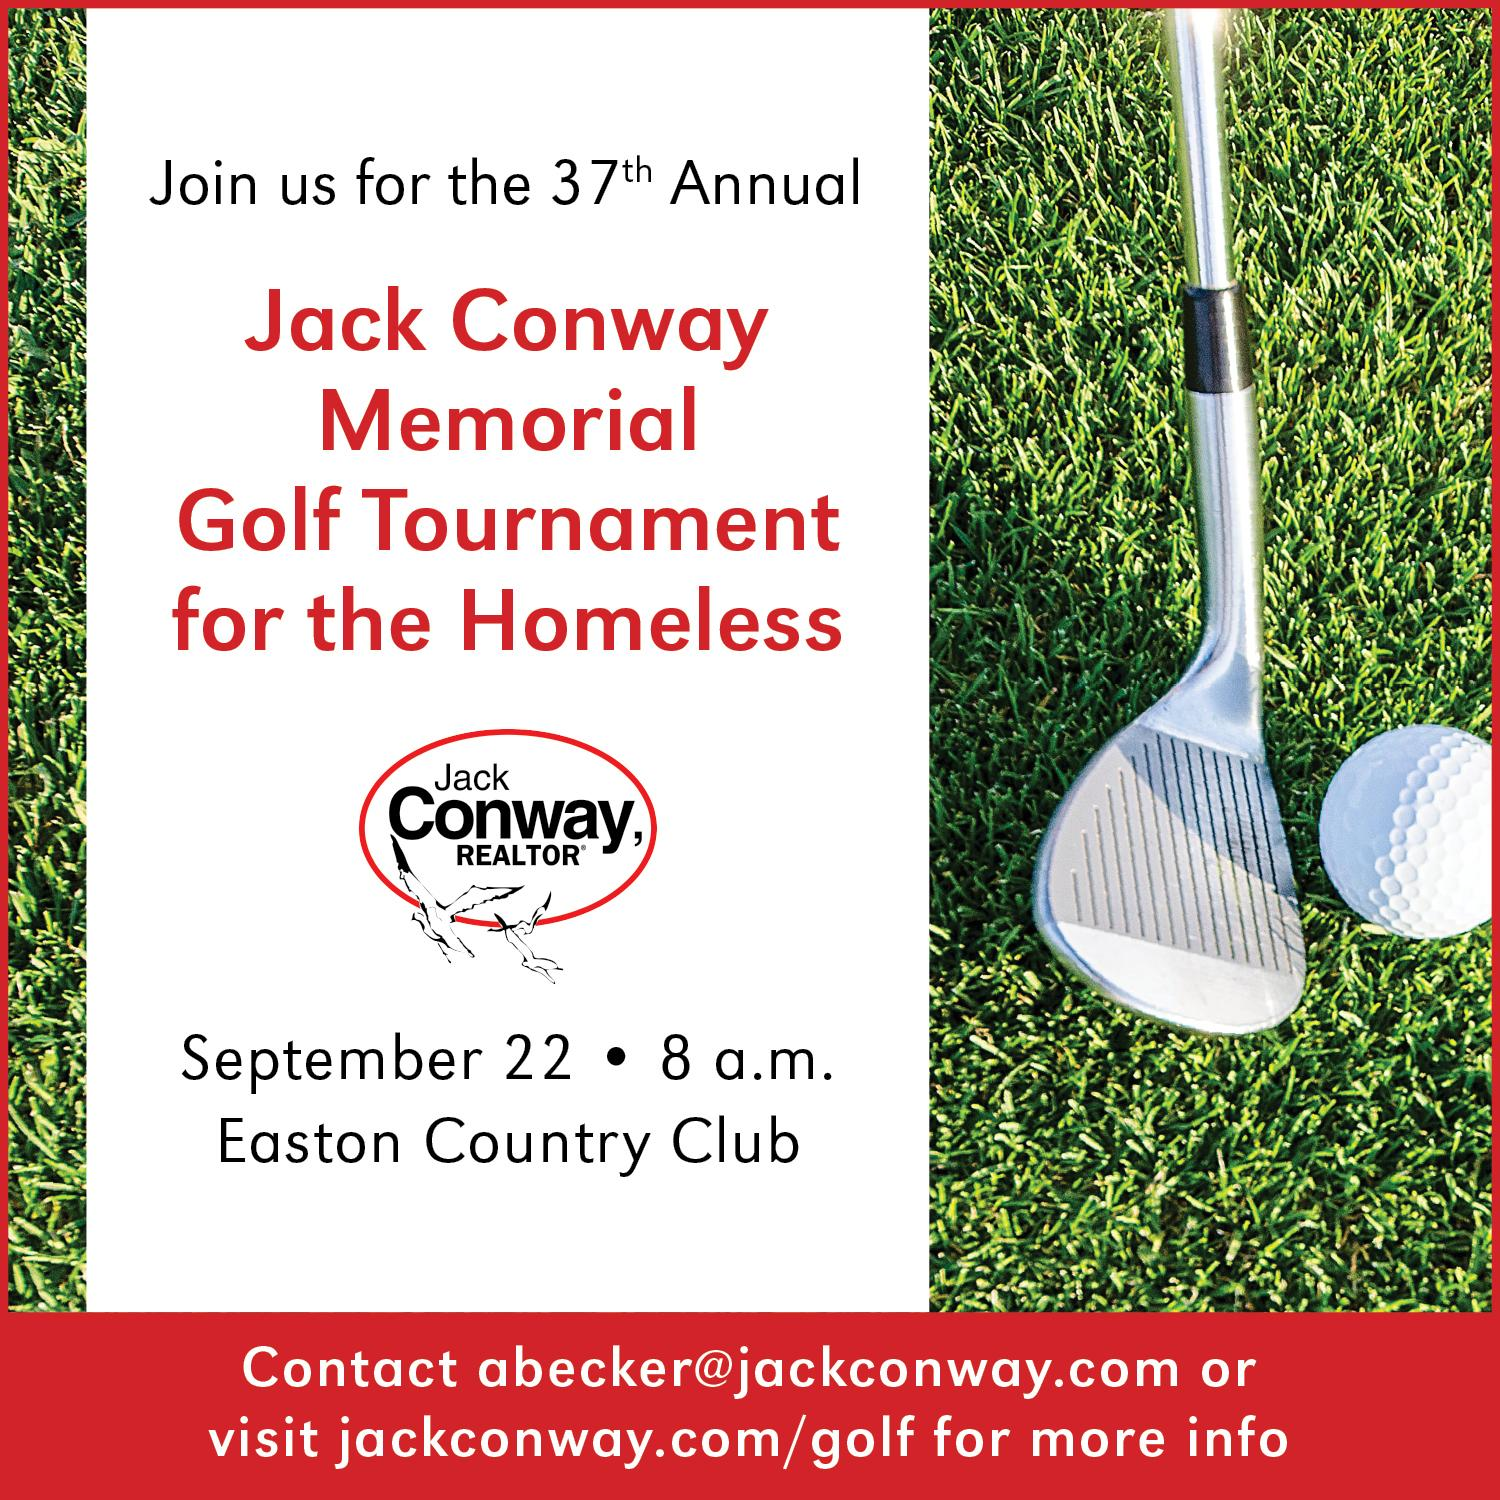 37th Annual Jack Conway Memorial Golf Tournament for the Homeless